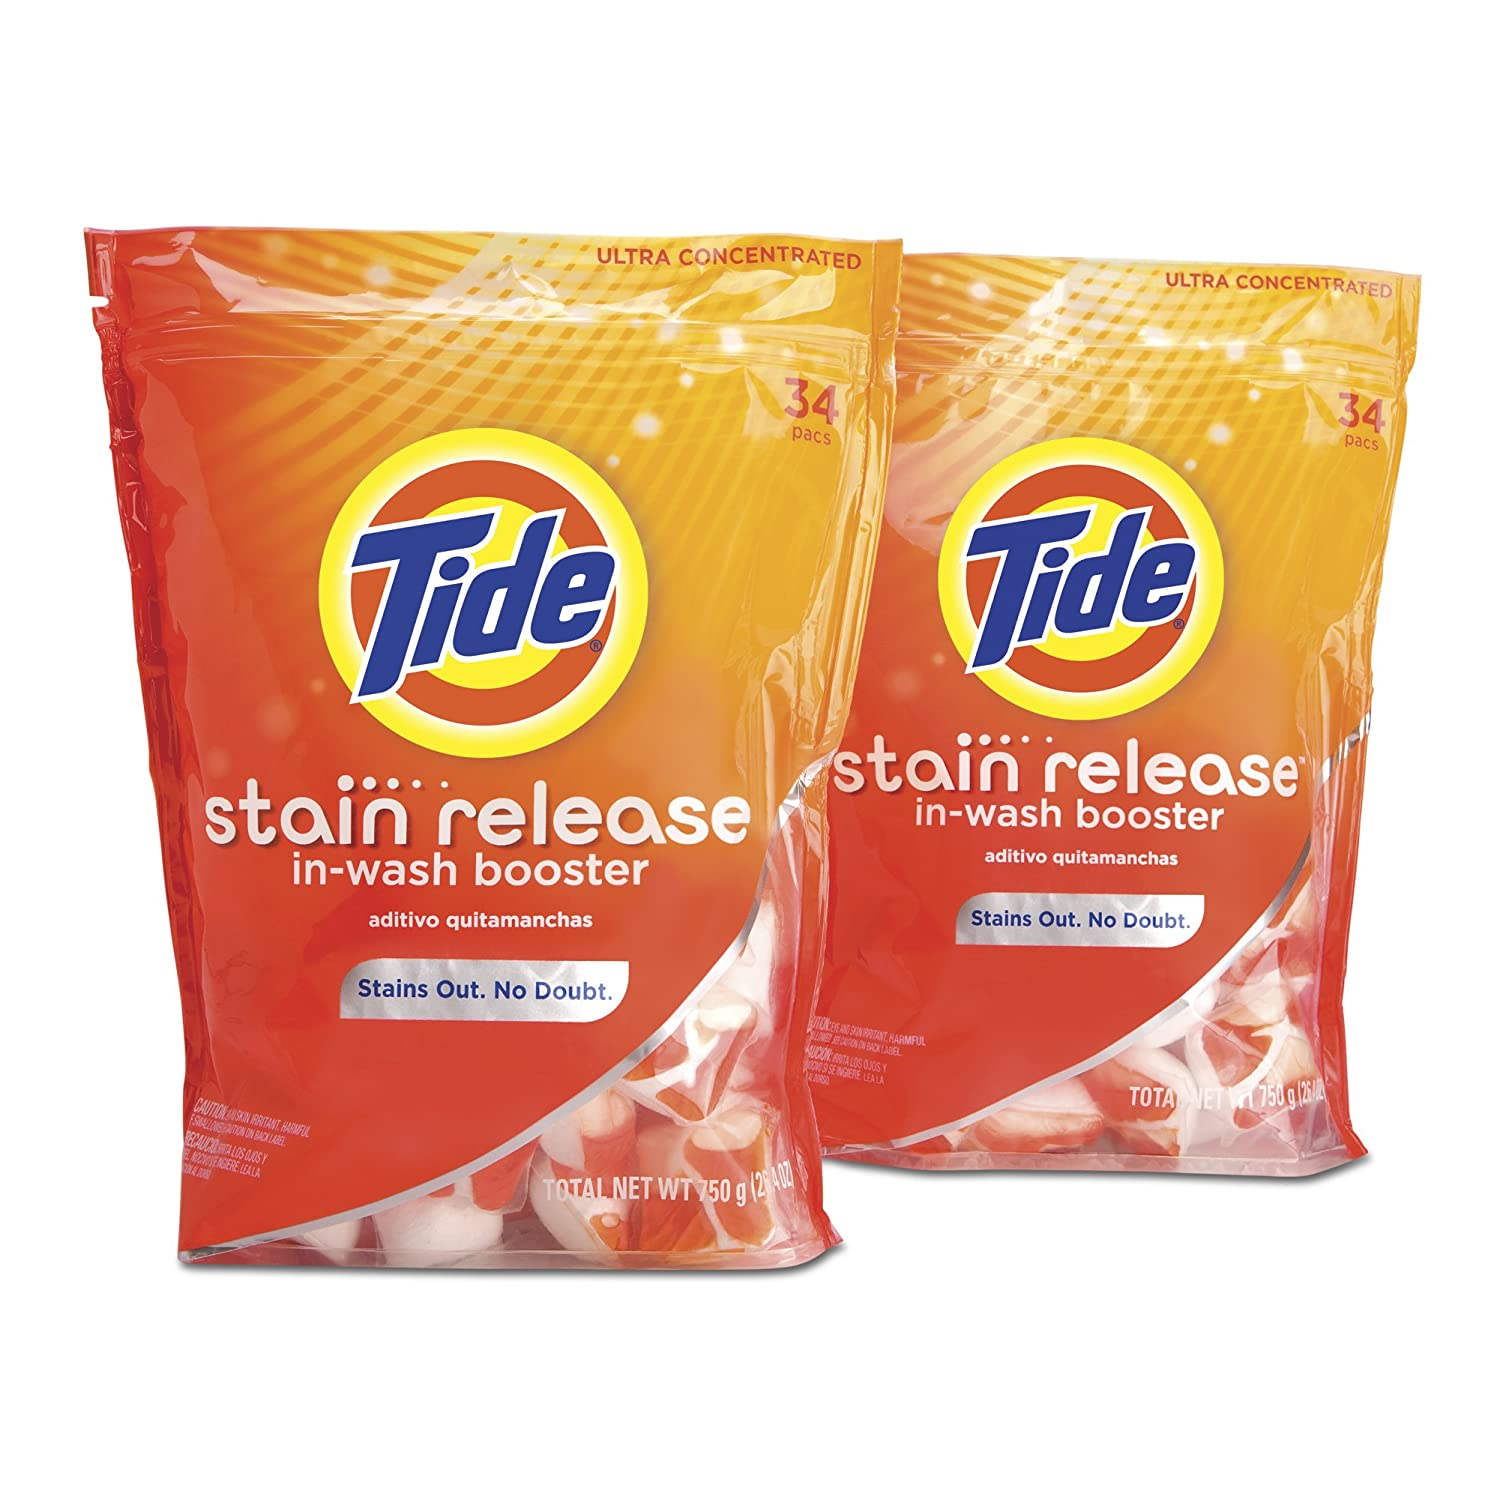 Amazon.com: Tide Stain Release Duo Pac In-Wash Booster Twin Pack, 34-count Bag [Amazon Frustration-Free Packaging]: Health & Personal Care